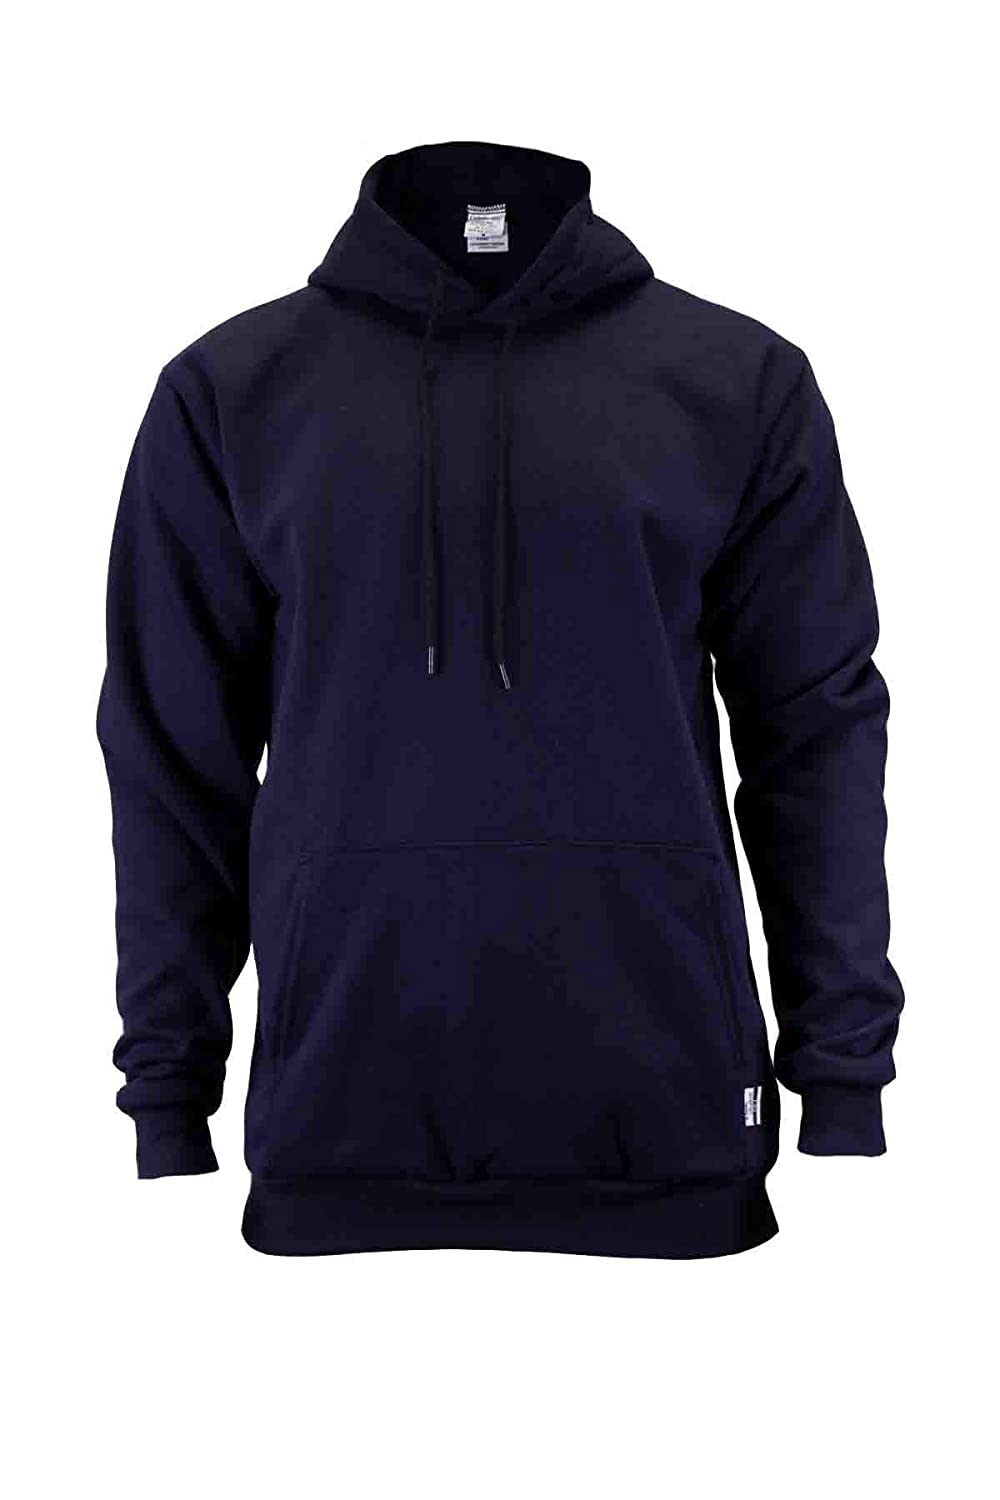 Union Line FR 10250-01-XXL 11 oz. Fleece Hooded FR Sweatshirt, 2X-Large, Navy, Made in The USA